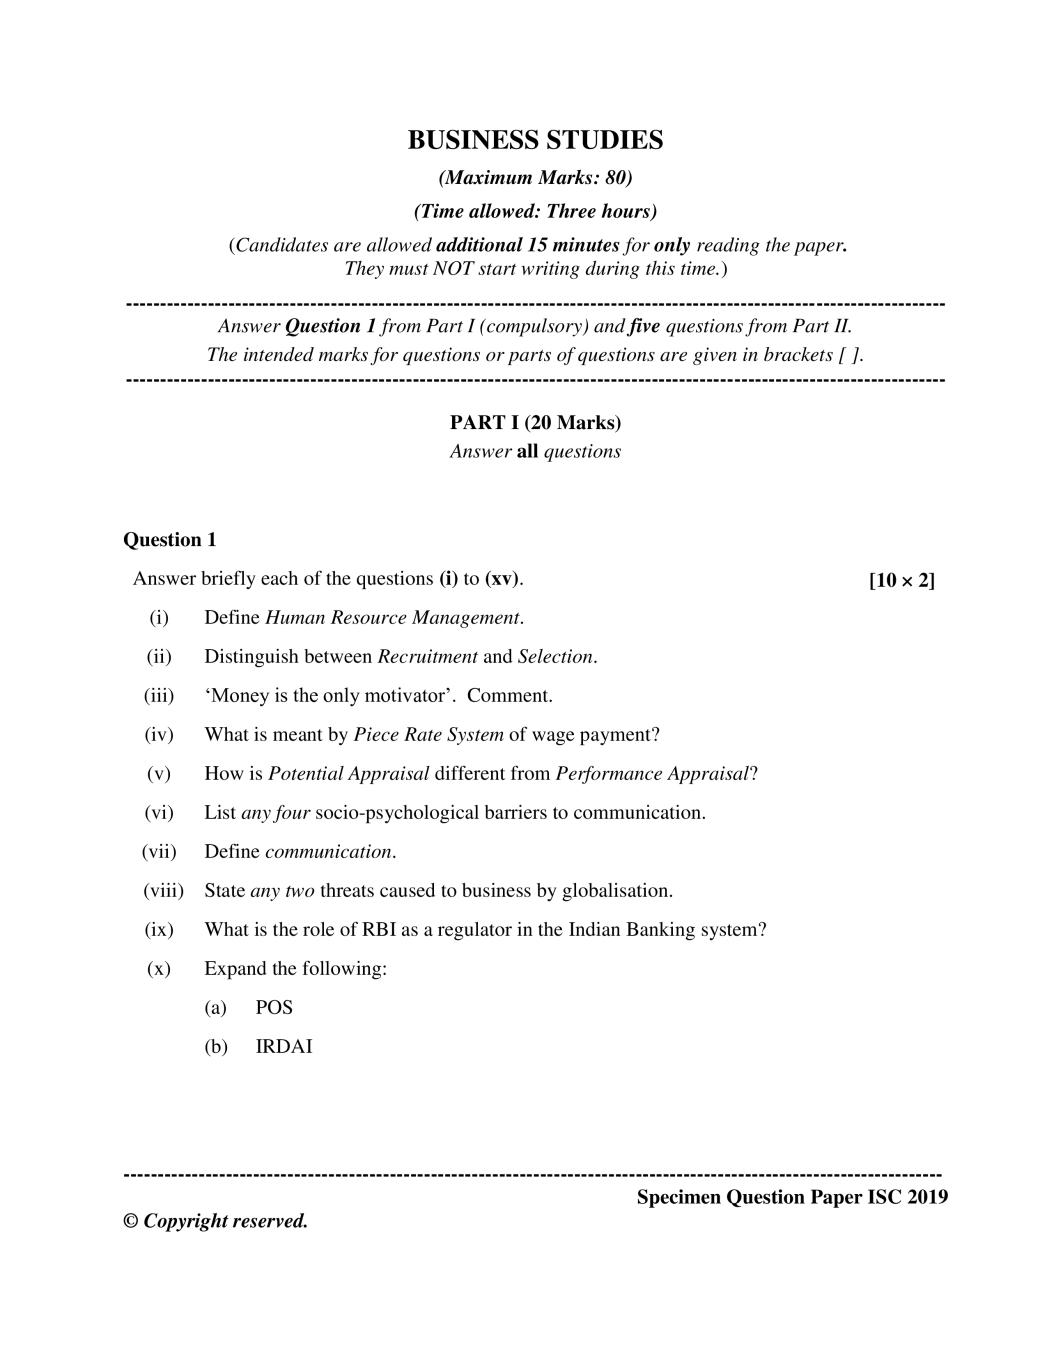 ISC Class 12 Question Paper 2019 for Business Studies - Page 1